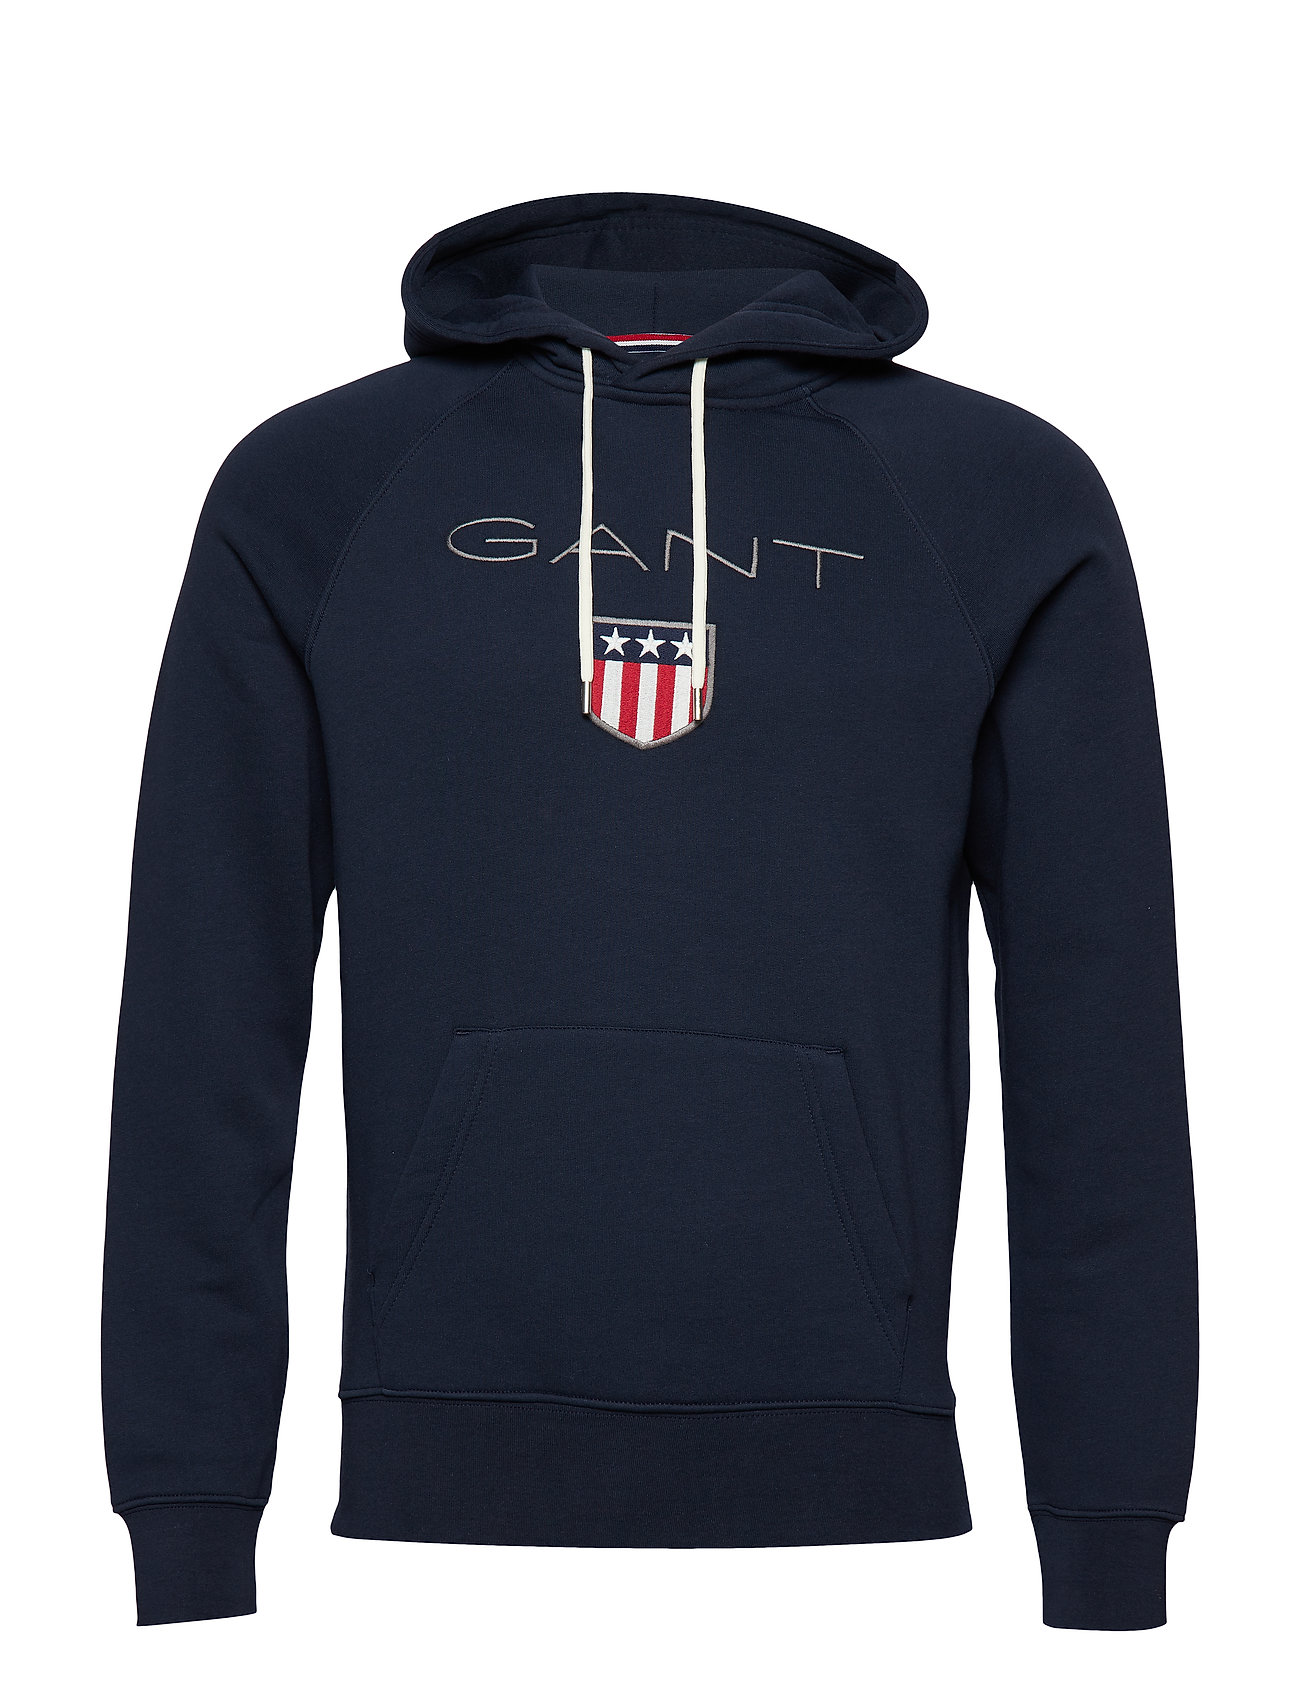 GANT GANT SHIELD HOODIE - EVENING BLUE